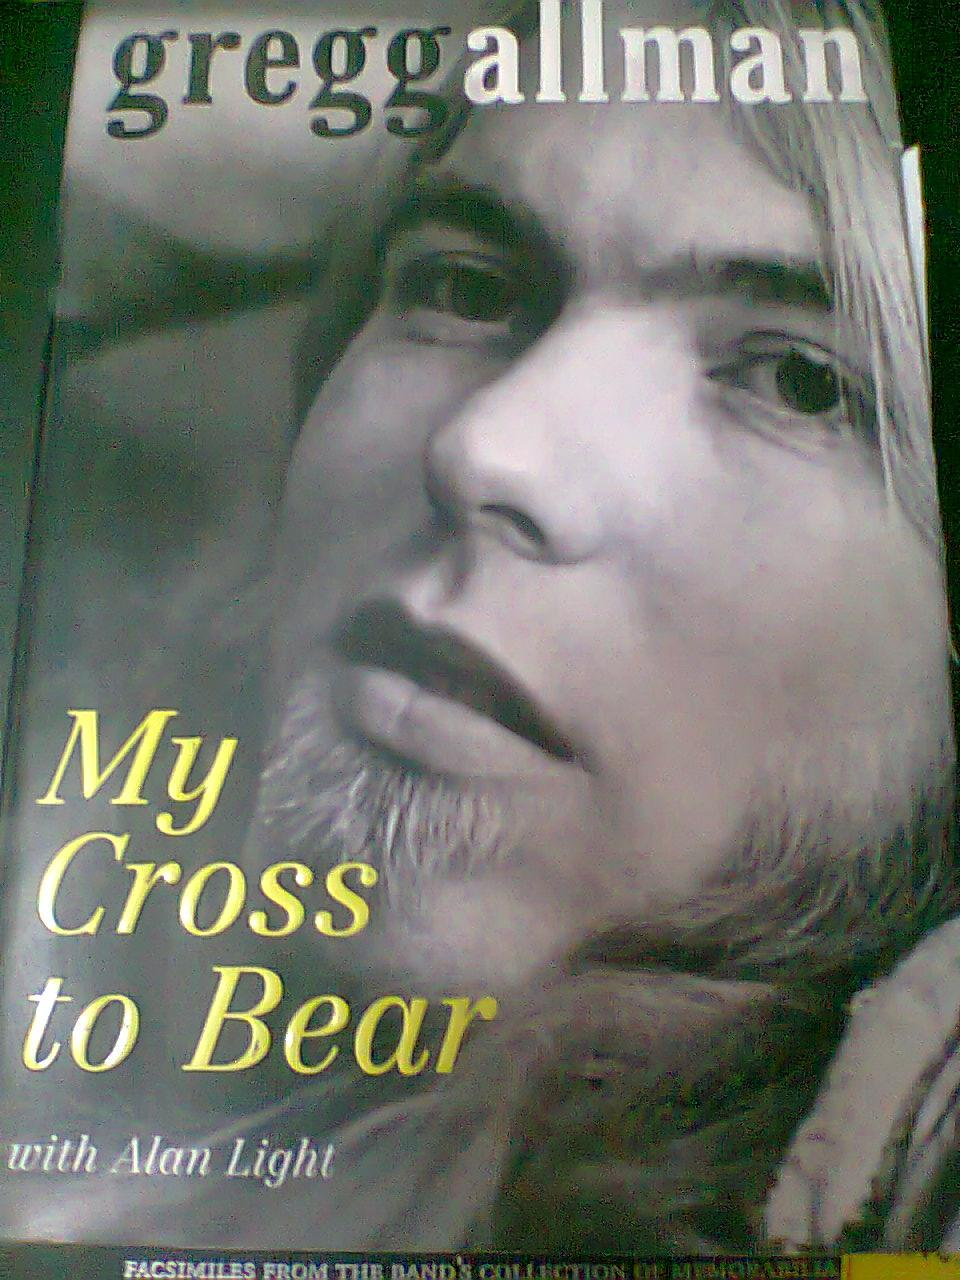 GREGG ALLMAN - MY CROSS TO BEAR (HARDCOVER) by ALAN LIGHT Biography